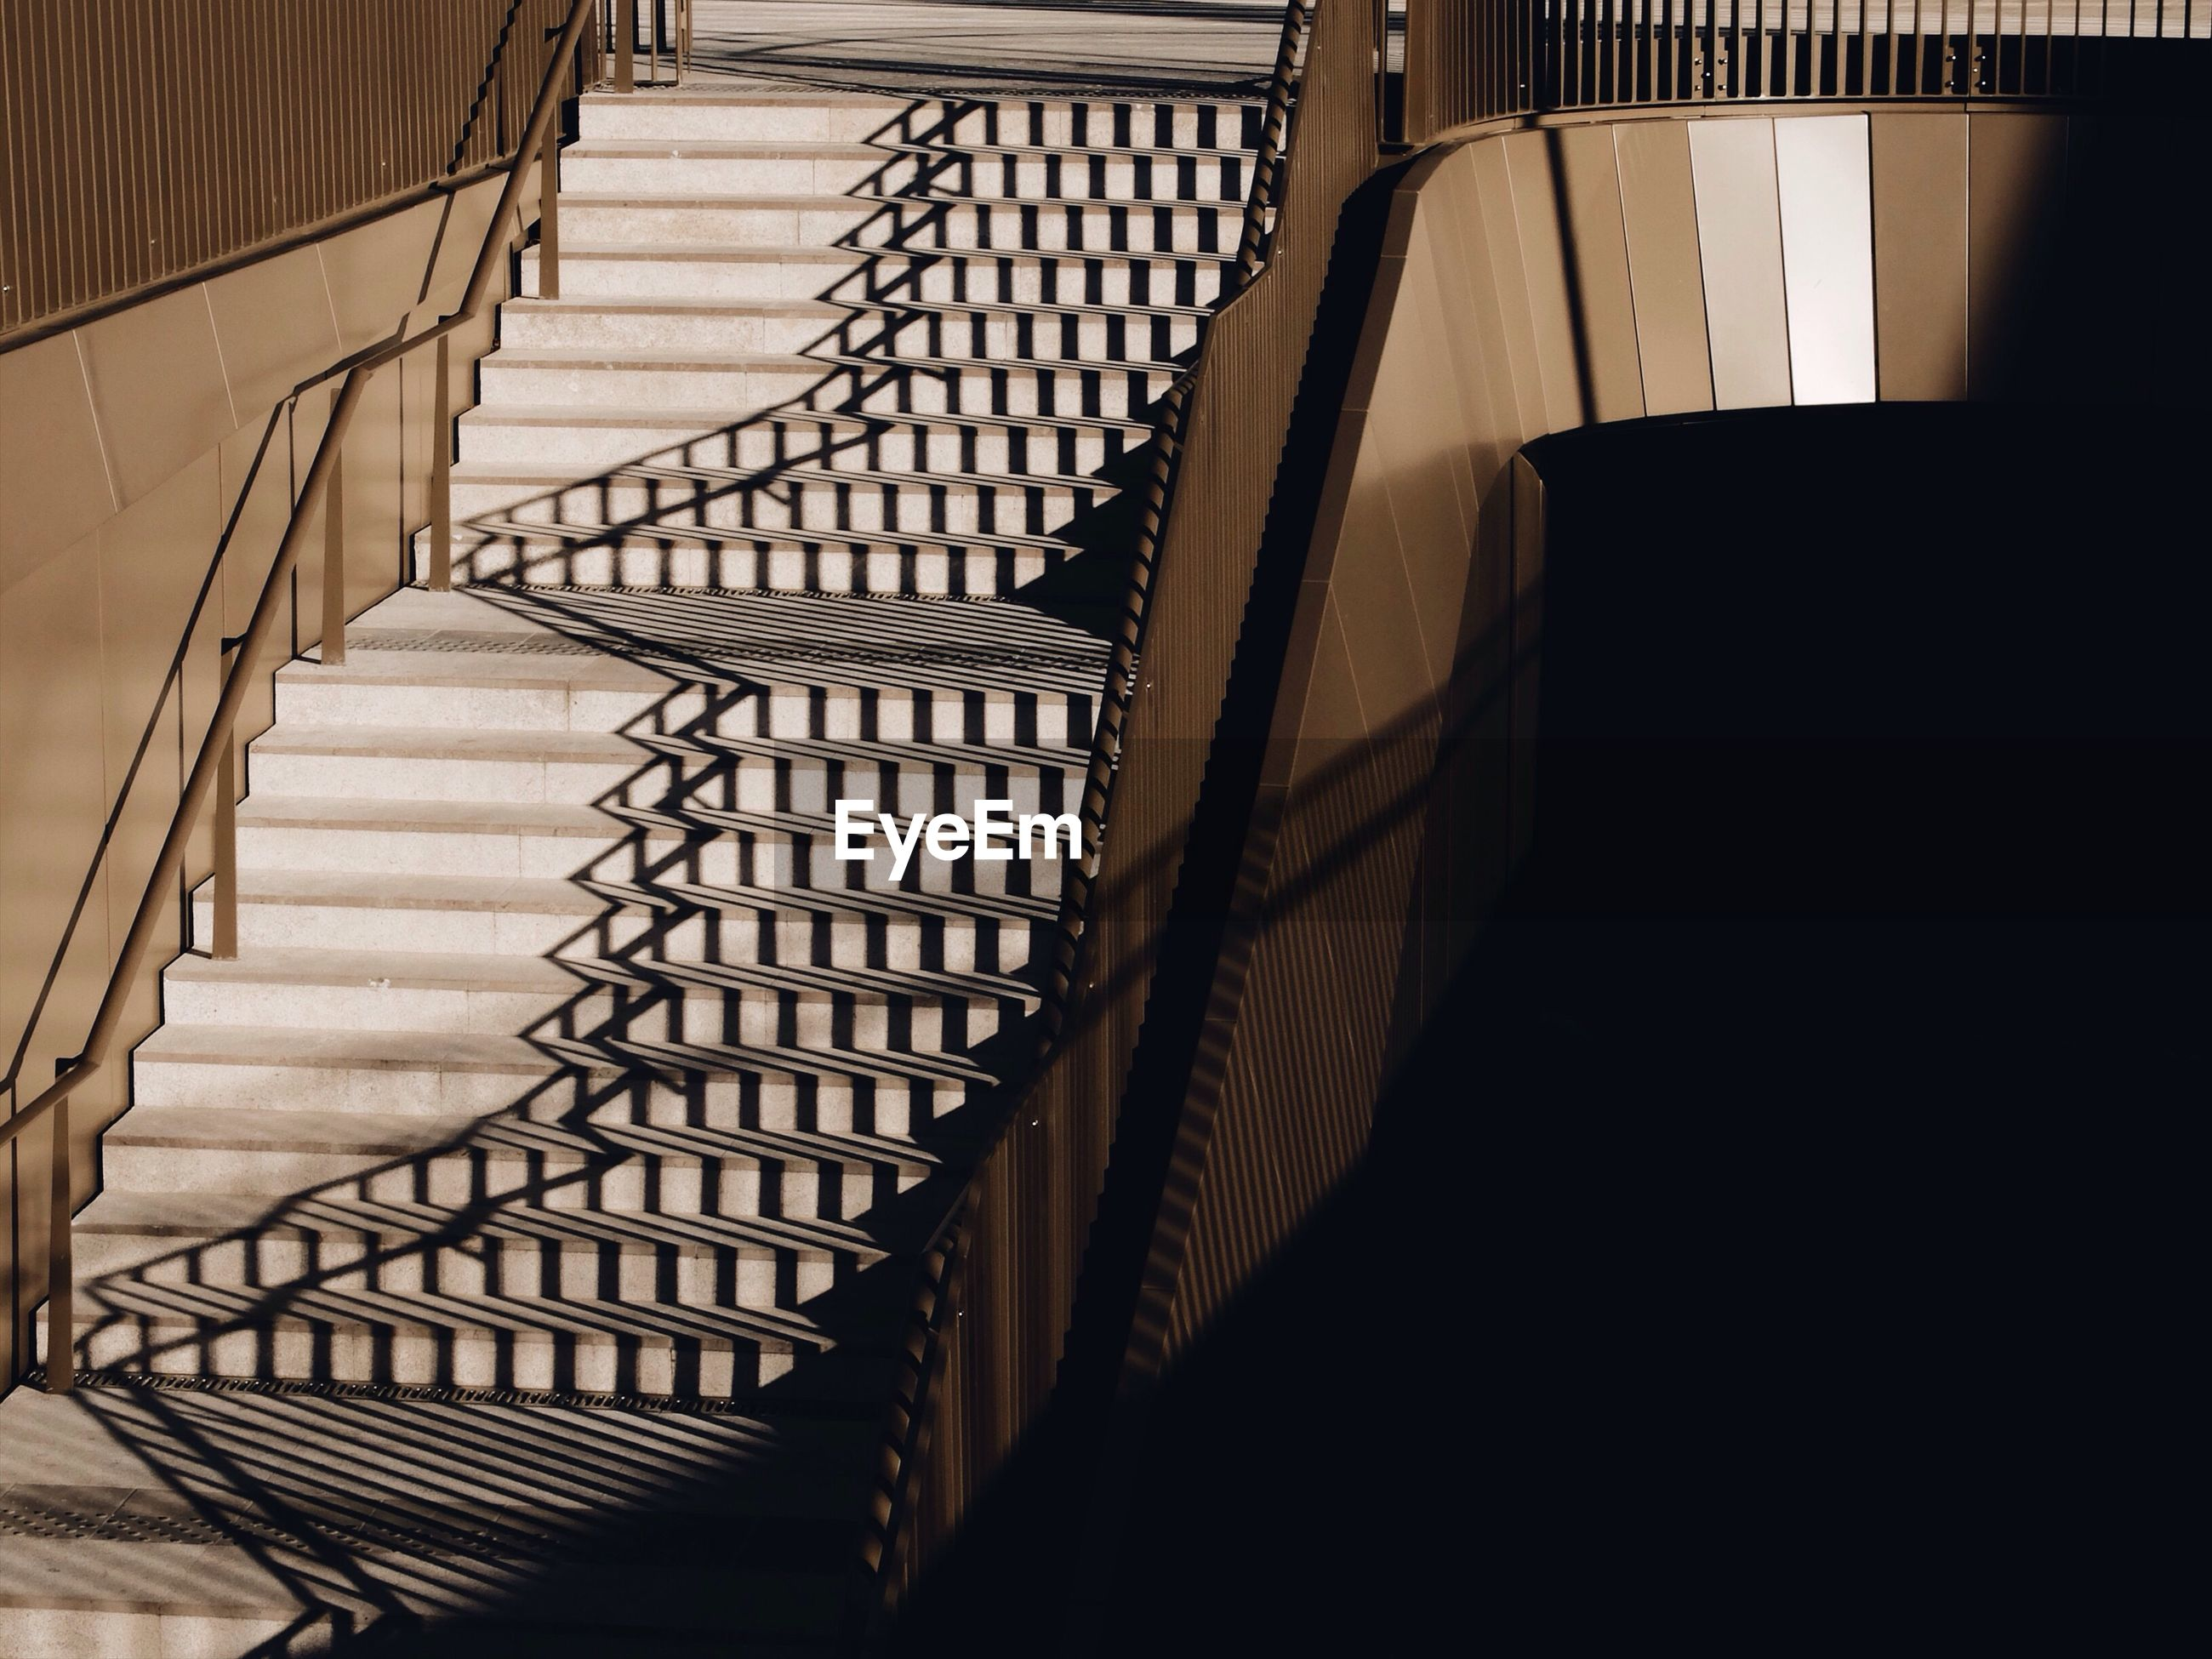 Reflections on staircase